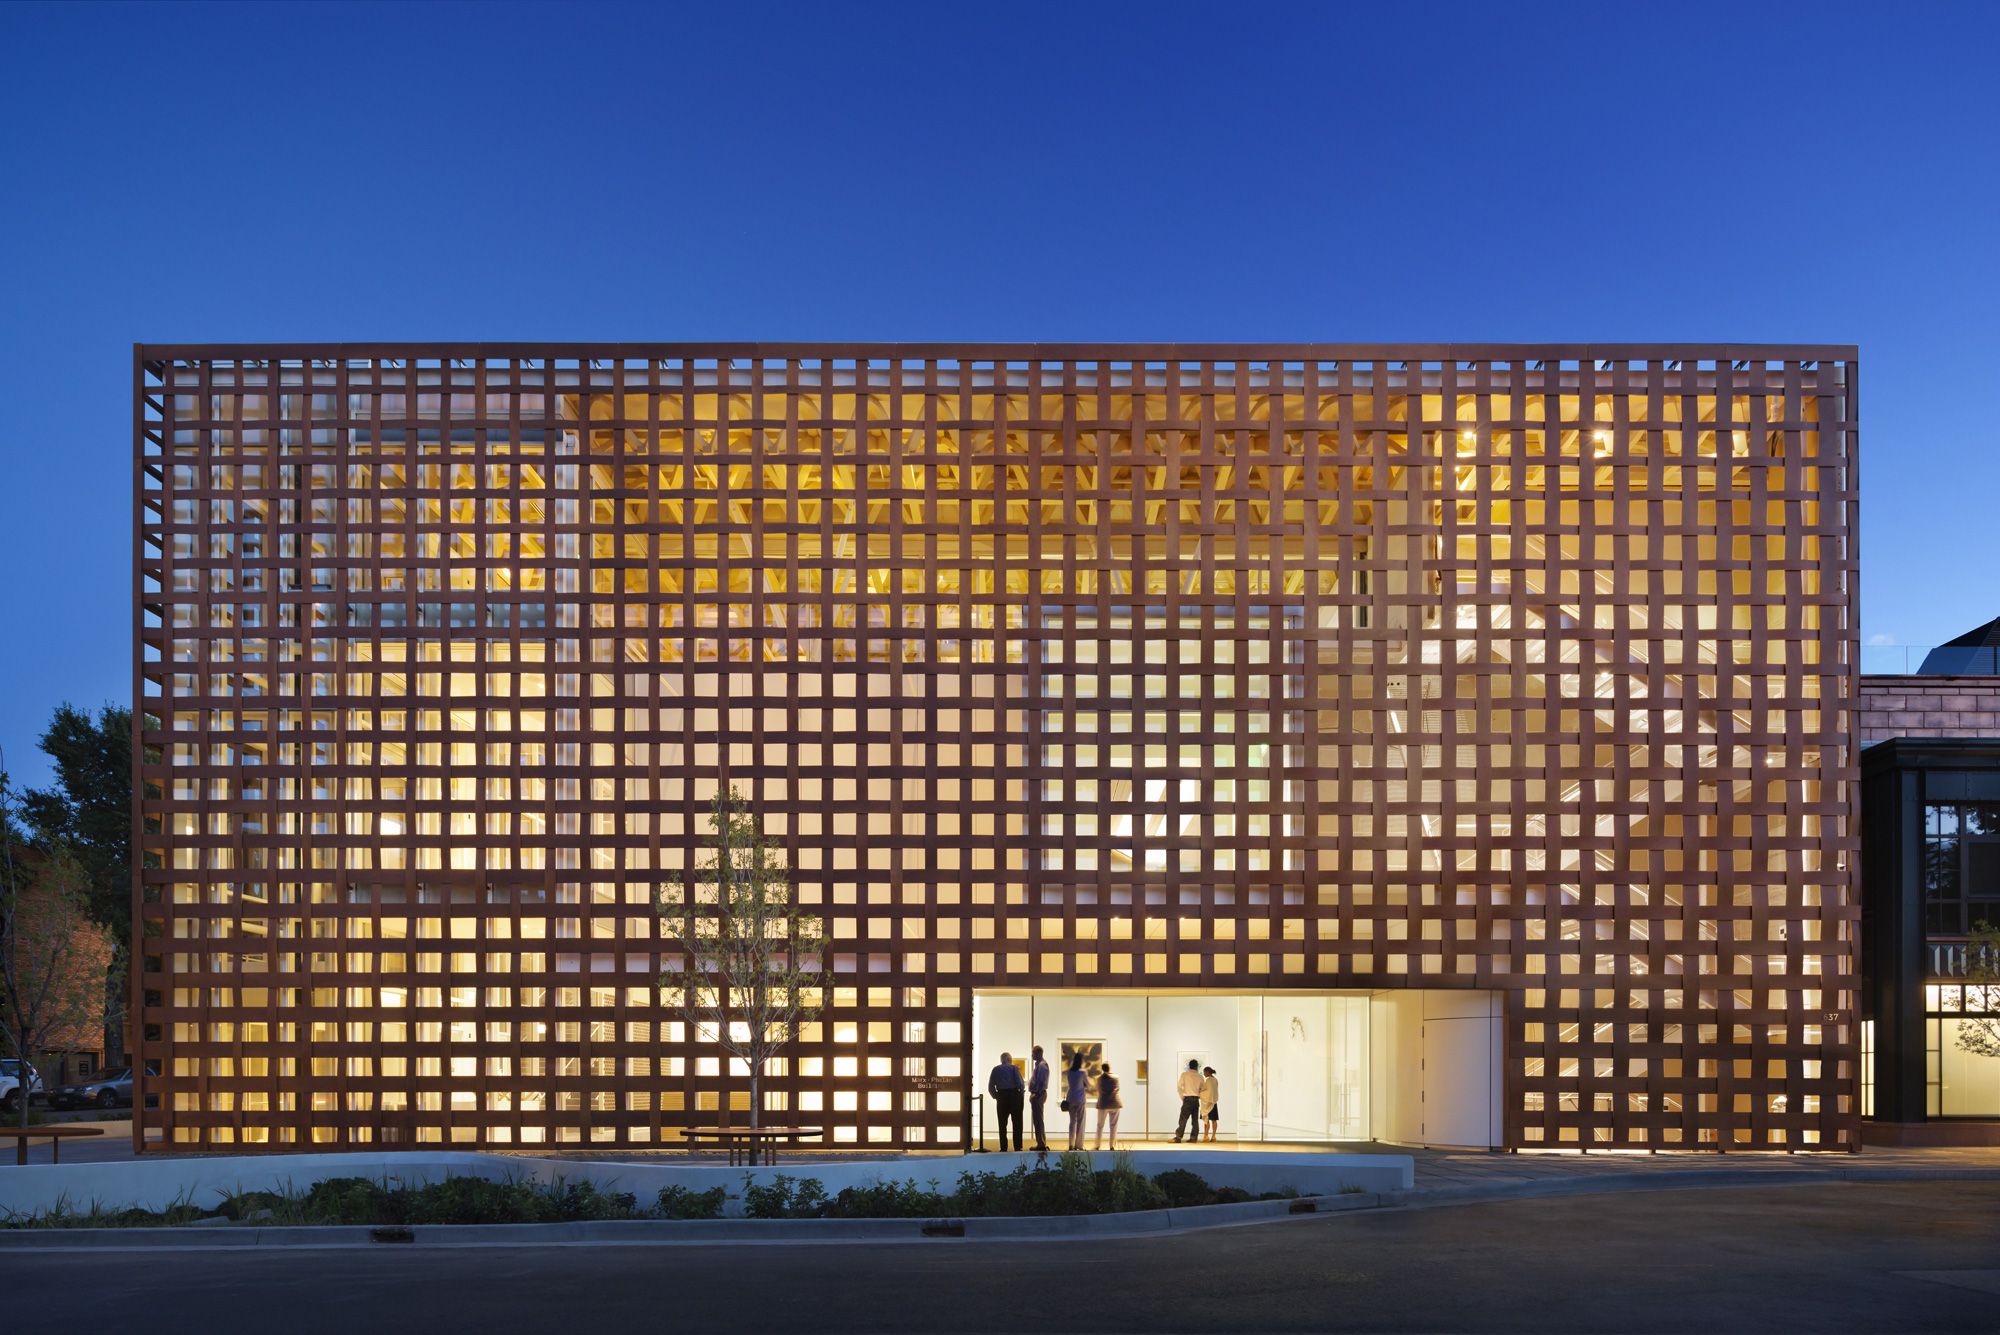 Aspen Art Museum / Shigeru Ban Architects (8)